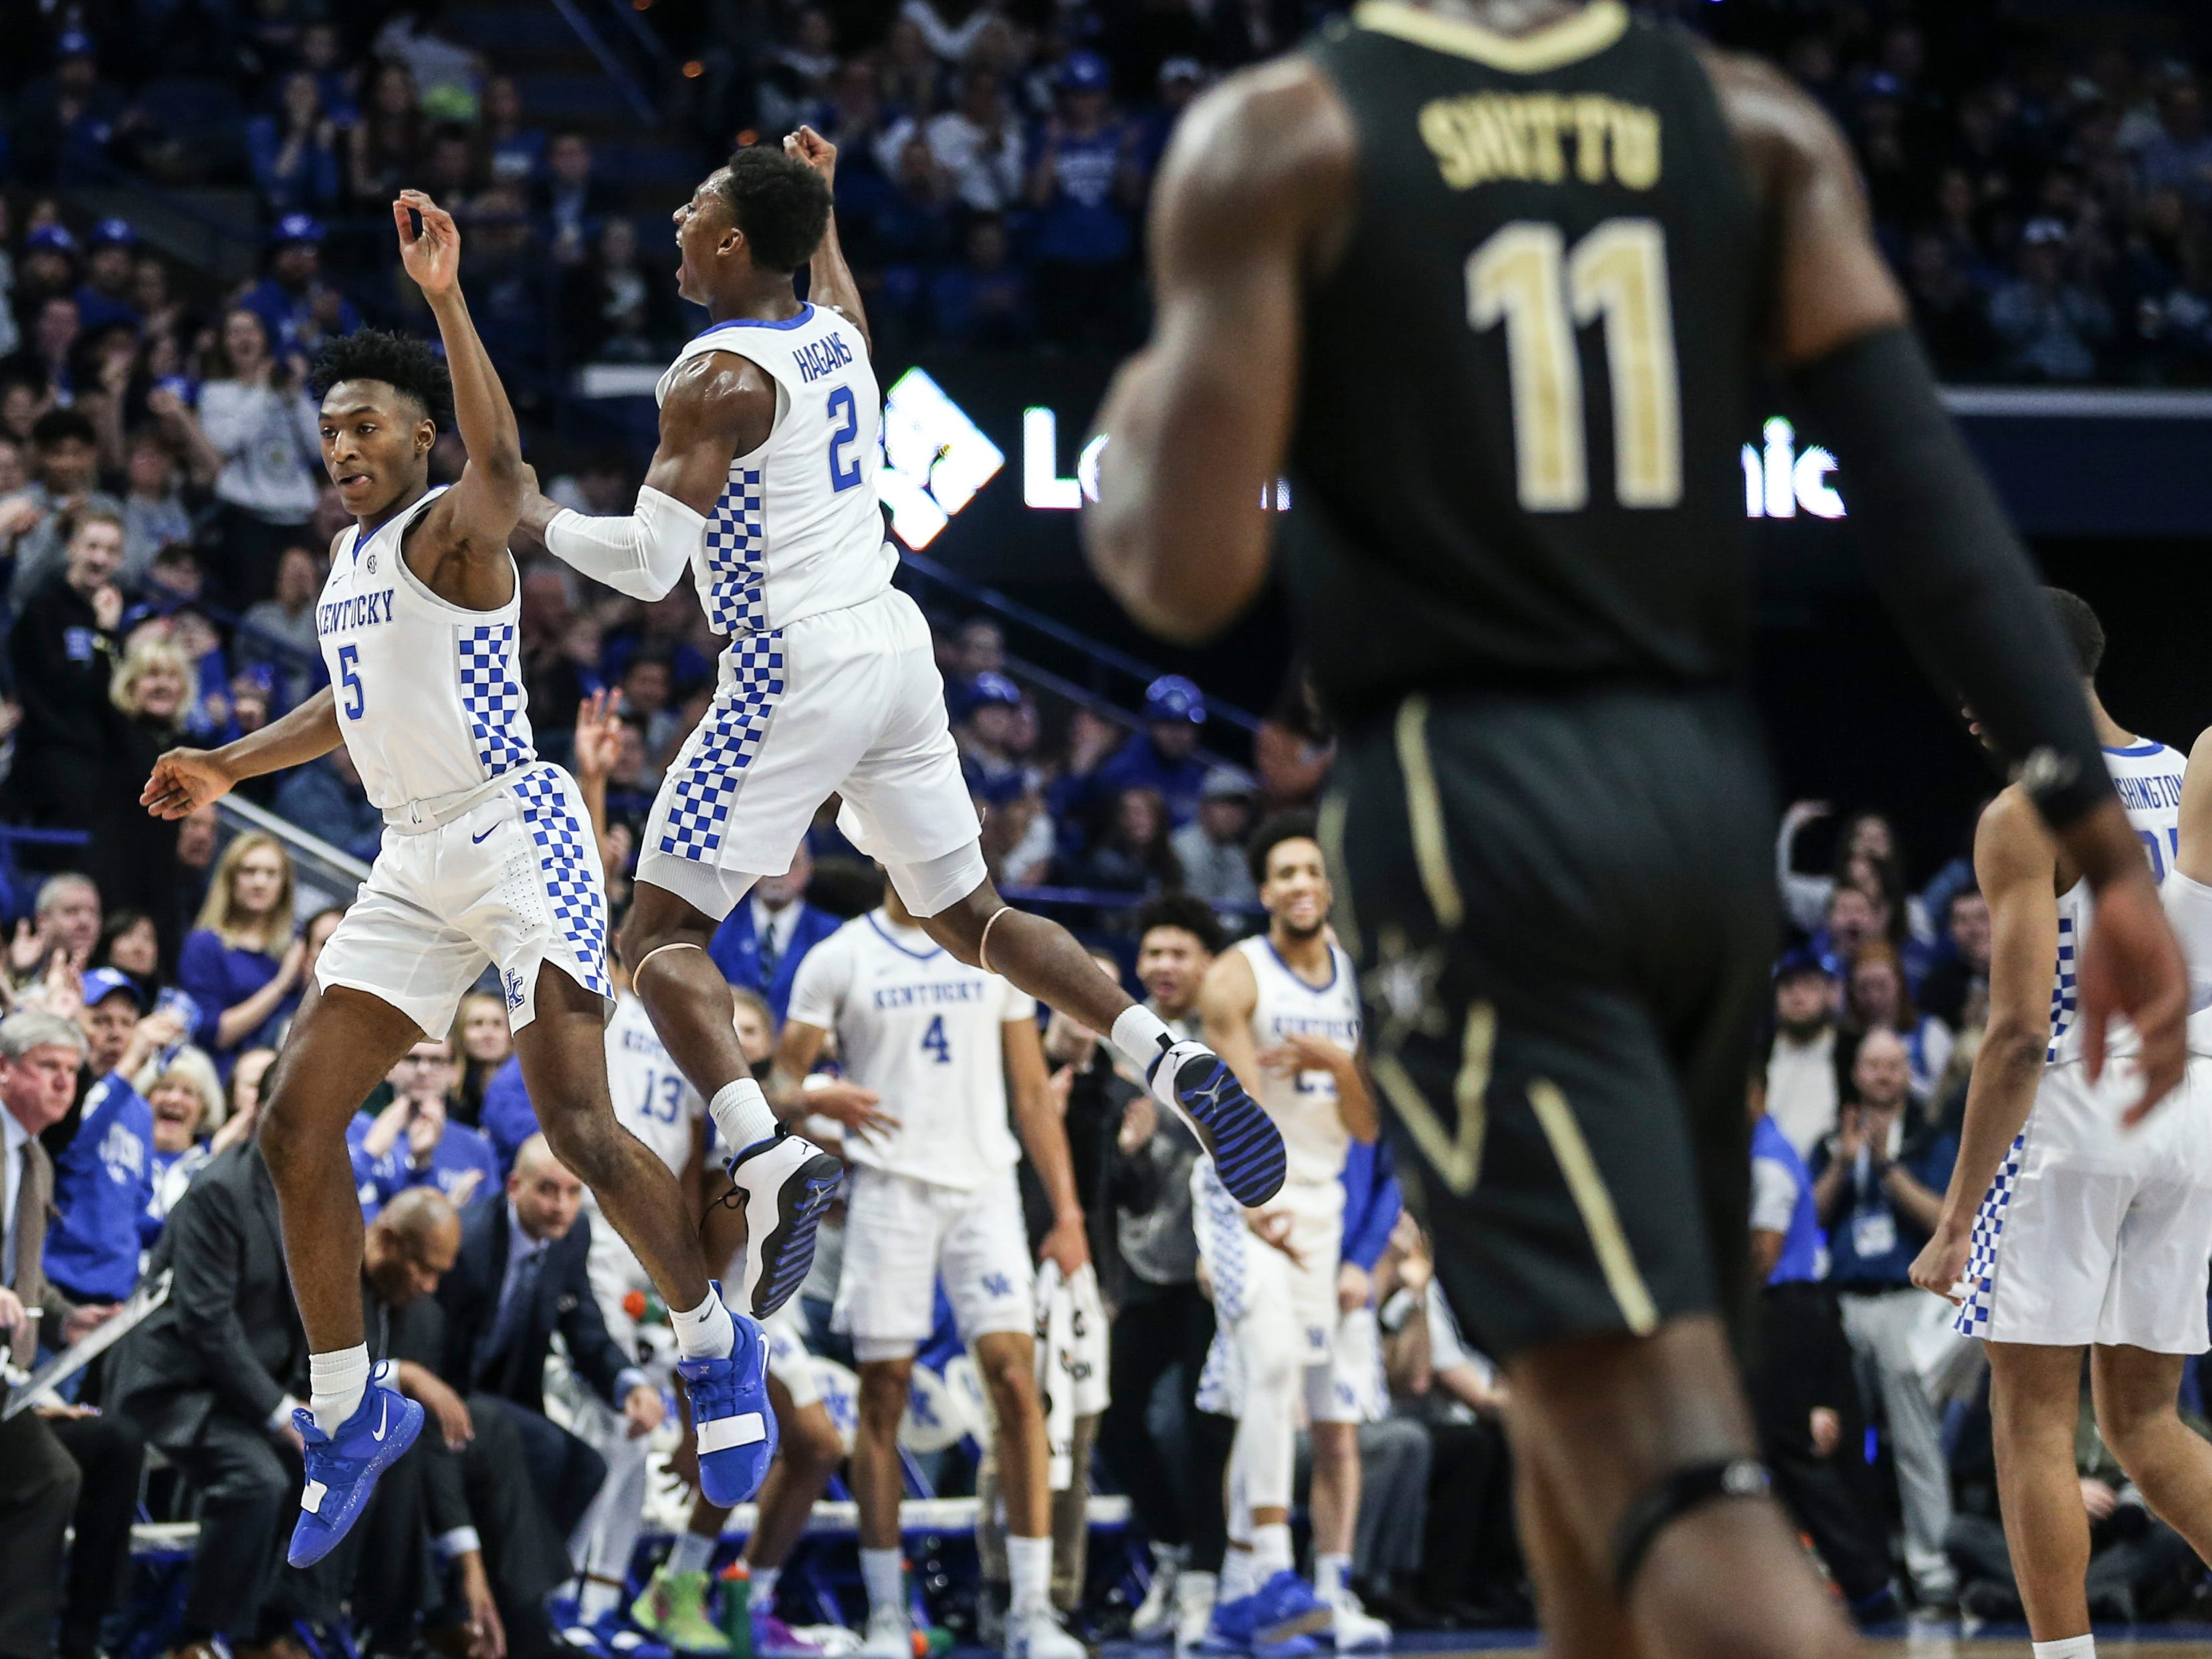 Kentucky's Immanuel Quickley celebrates with Ashton Hagans after Quickley hit a big three point shot against Vanderbilt Saturday night at Rupp Arena in Lexington. January 12, 2019